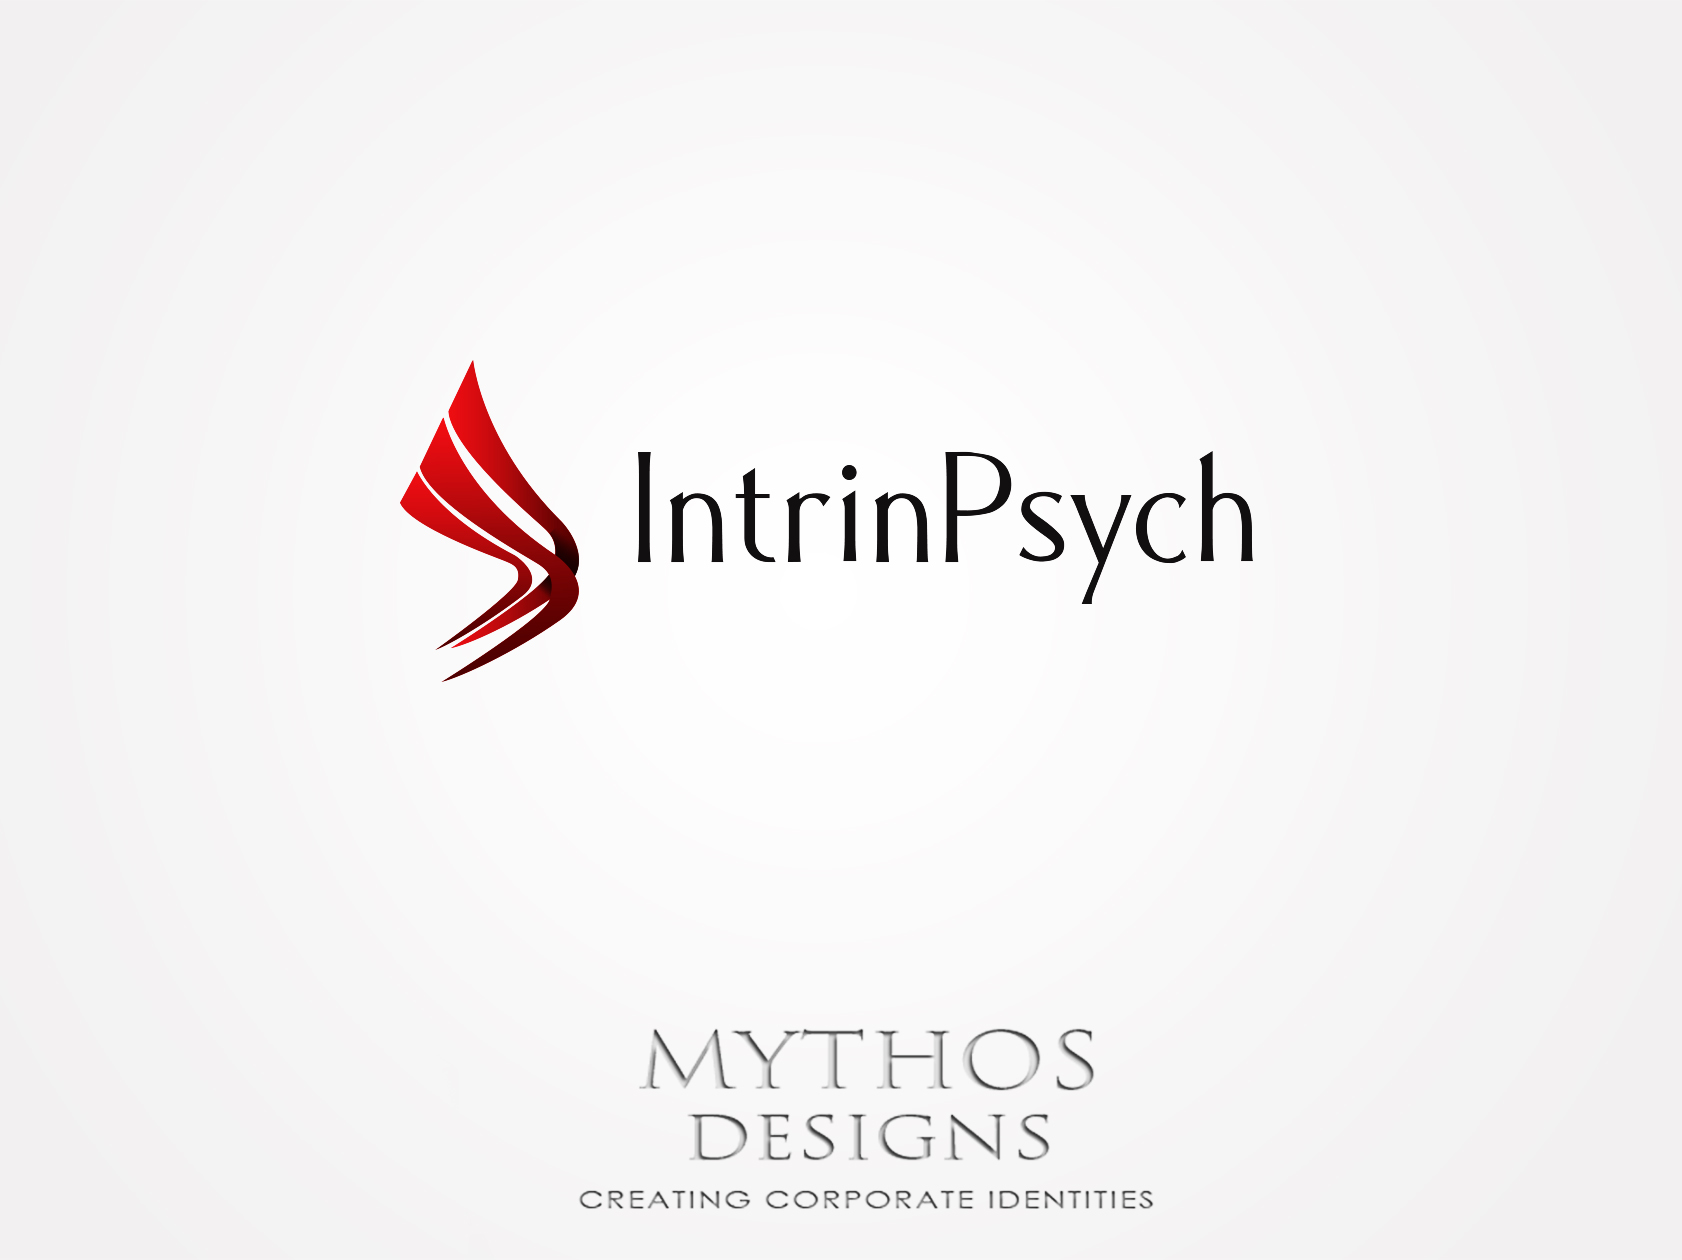 Logo Design by Mythos Designs - Entry No. 4 in the Logo Design Contest New Logo Design for IntrinPsych.